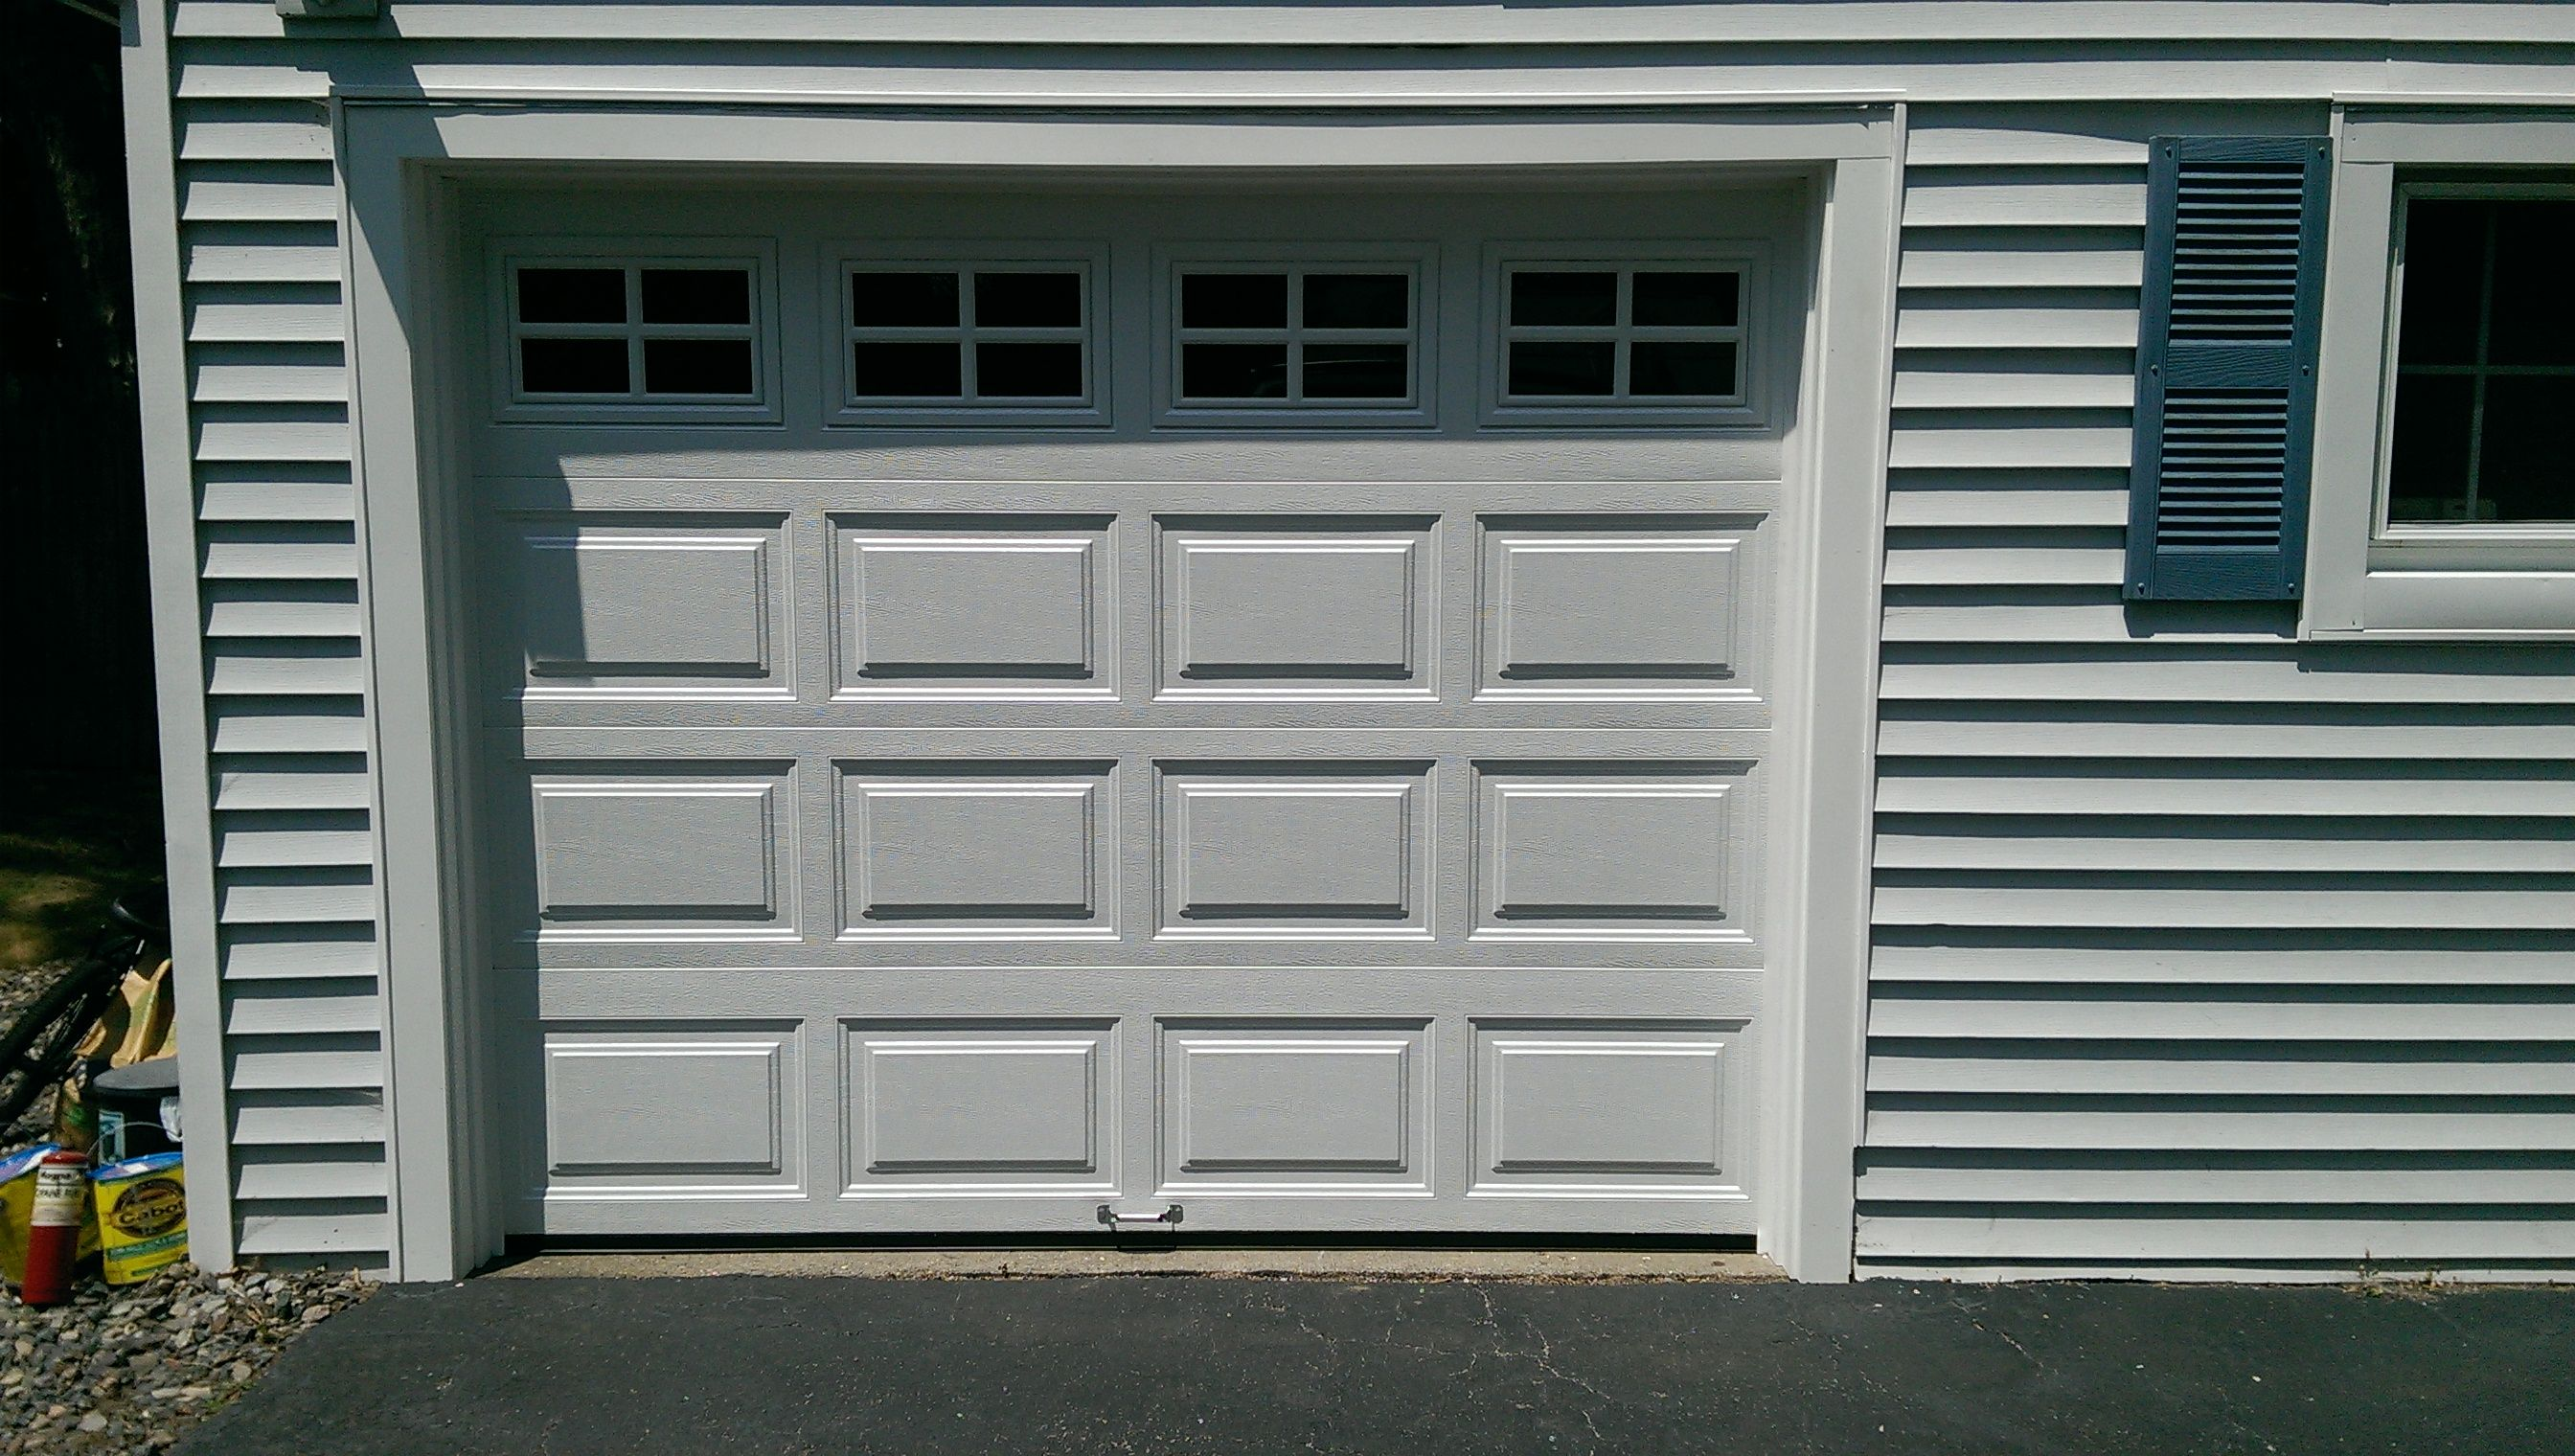 Clopaydoors Model 4050 Raised Panel Steel Insulated Garage Door In White With Colonial Glass Install Residential Garage Doors Garage Doors Garage Door Styles